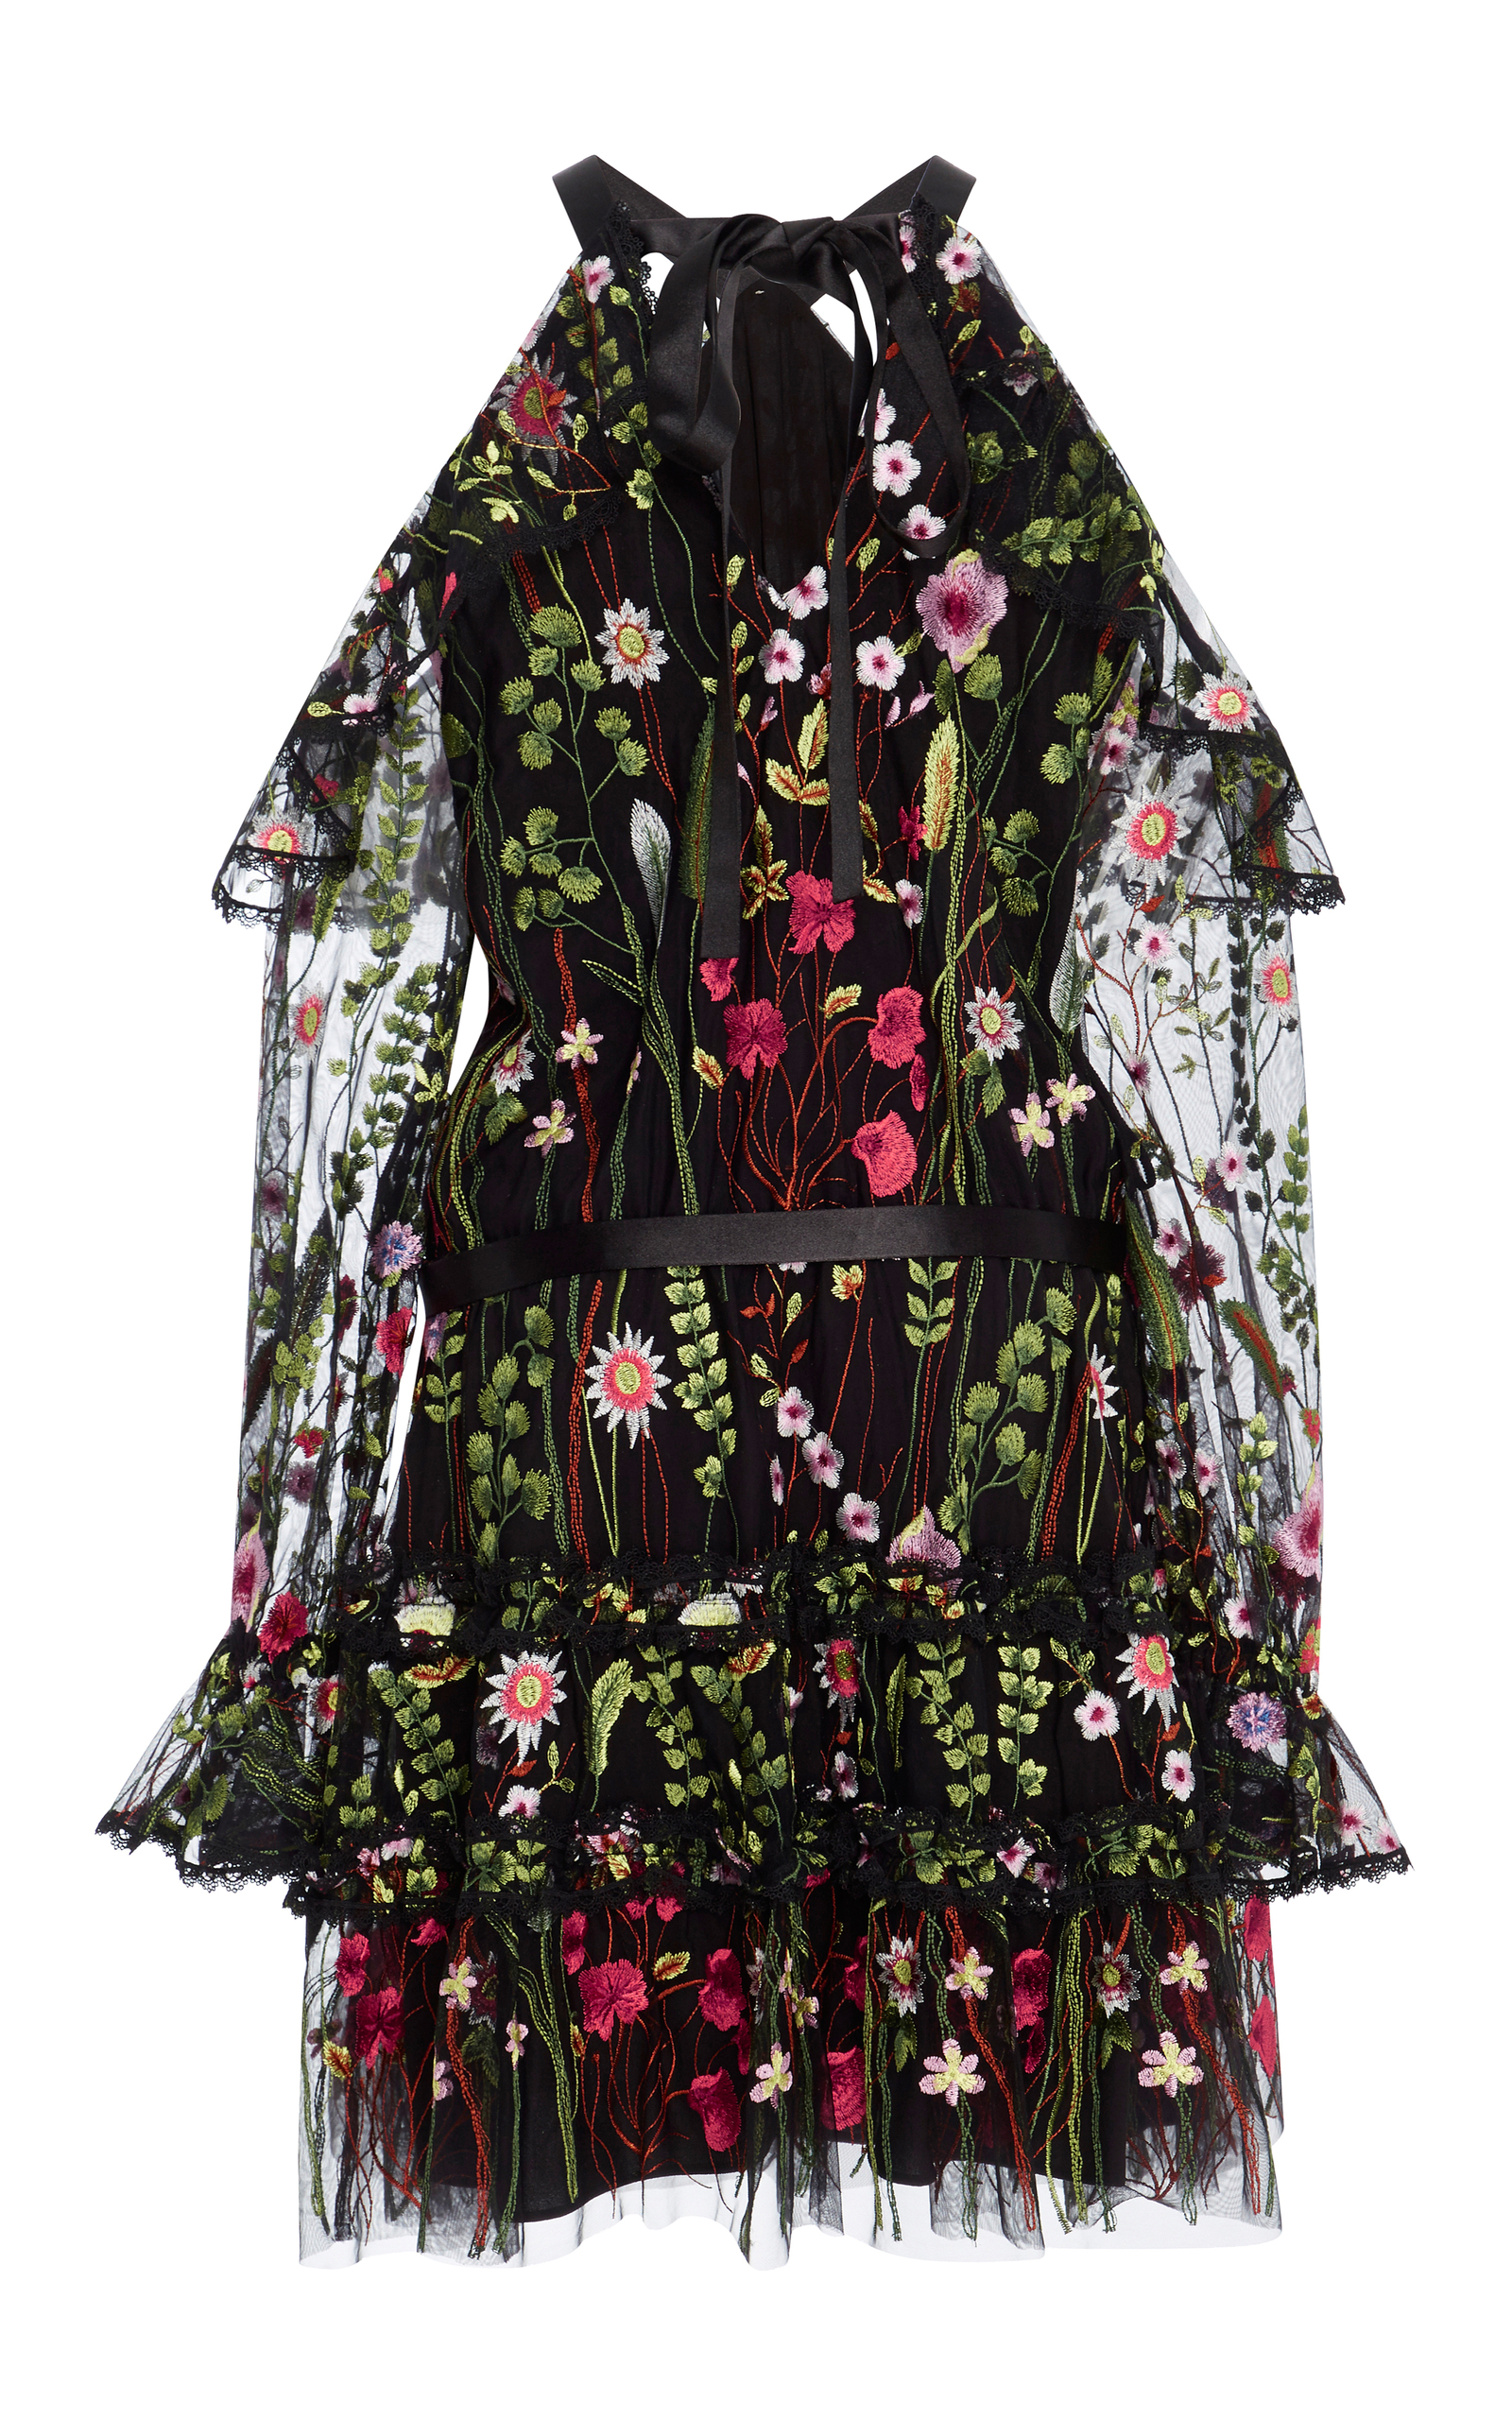 Adeline Floral Embroidered Dress By Alexis Moda Operandi